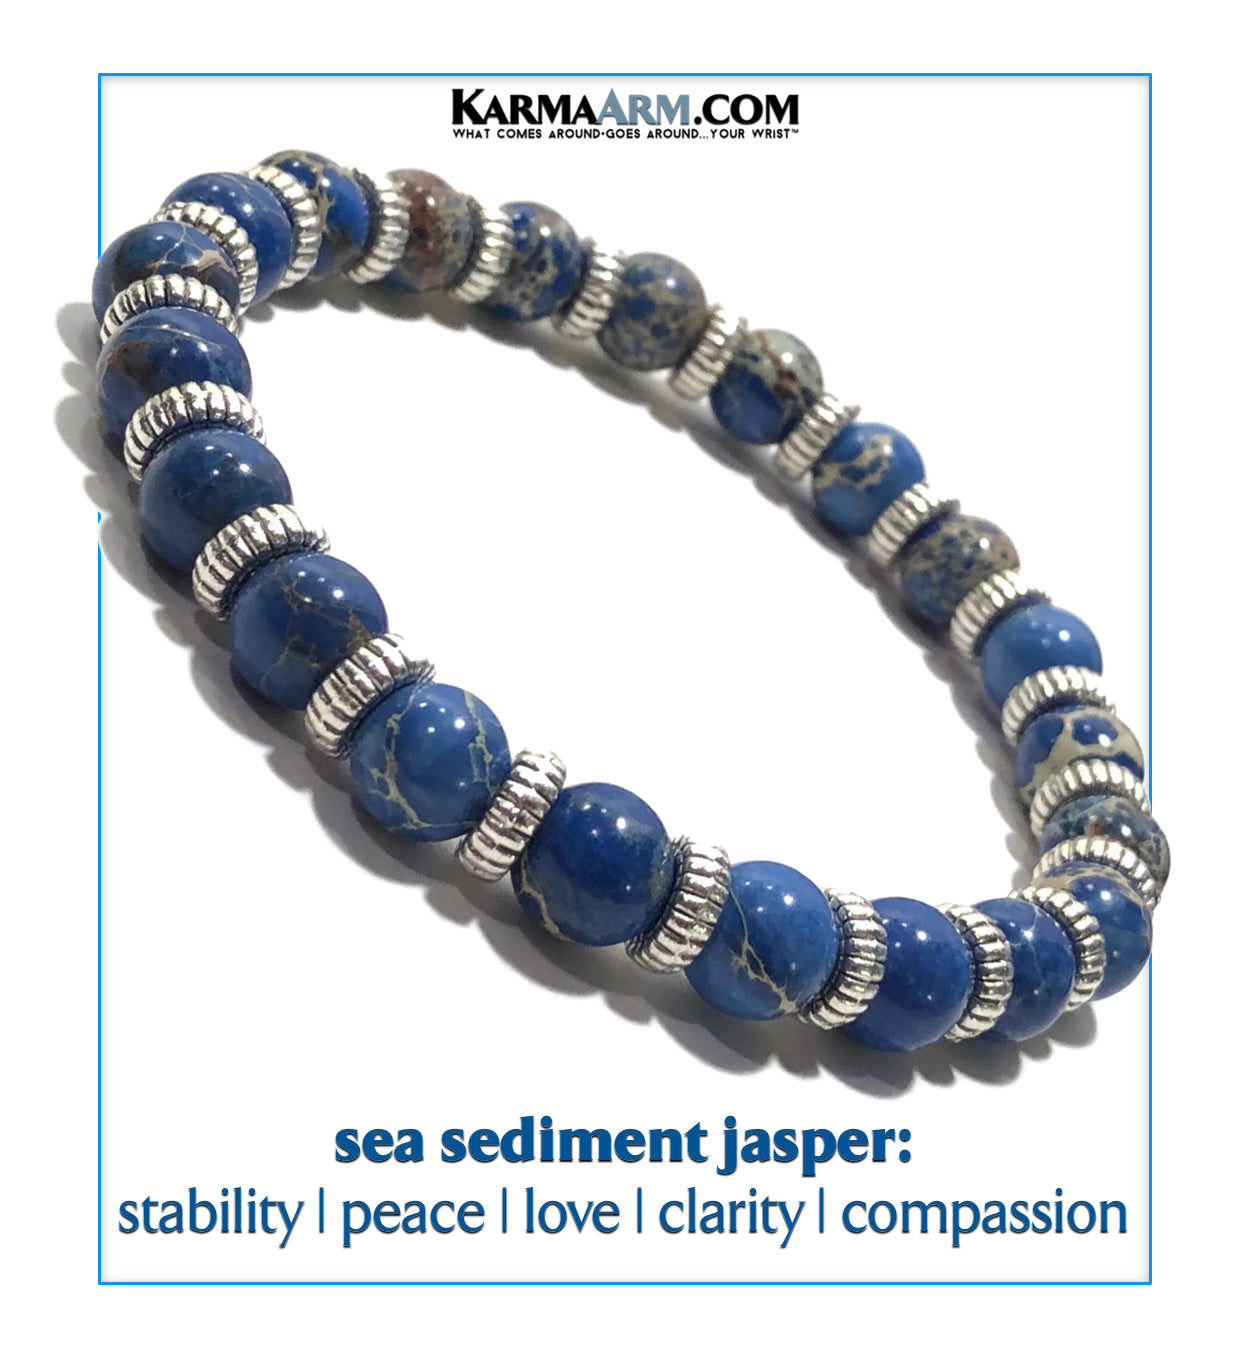 Reiki Healing Energy Wellness Self-Care Meditation Jewelry KarmaArm Love Bracelet Intimacy : India Agate Mantra Bead Chakra Yoga Jewelry Beaded Stretch Wristband Bracelet